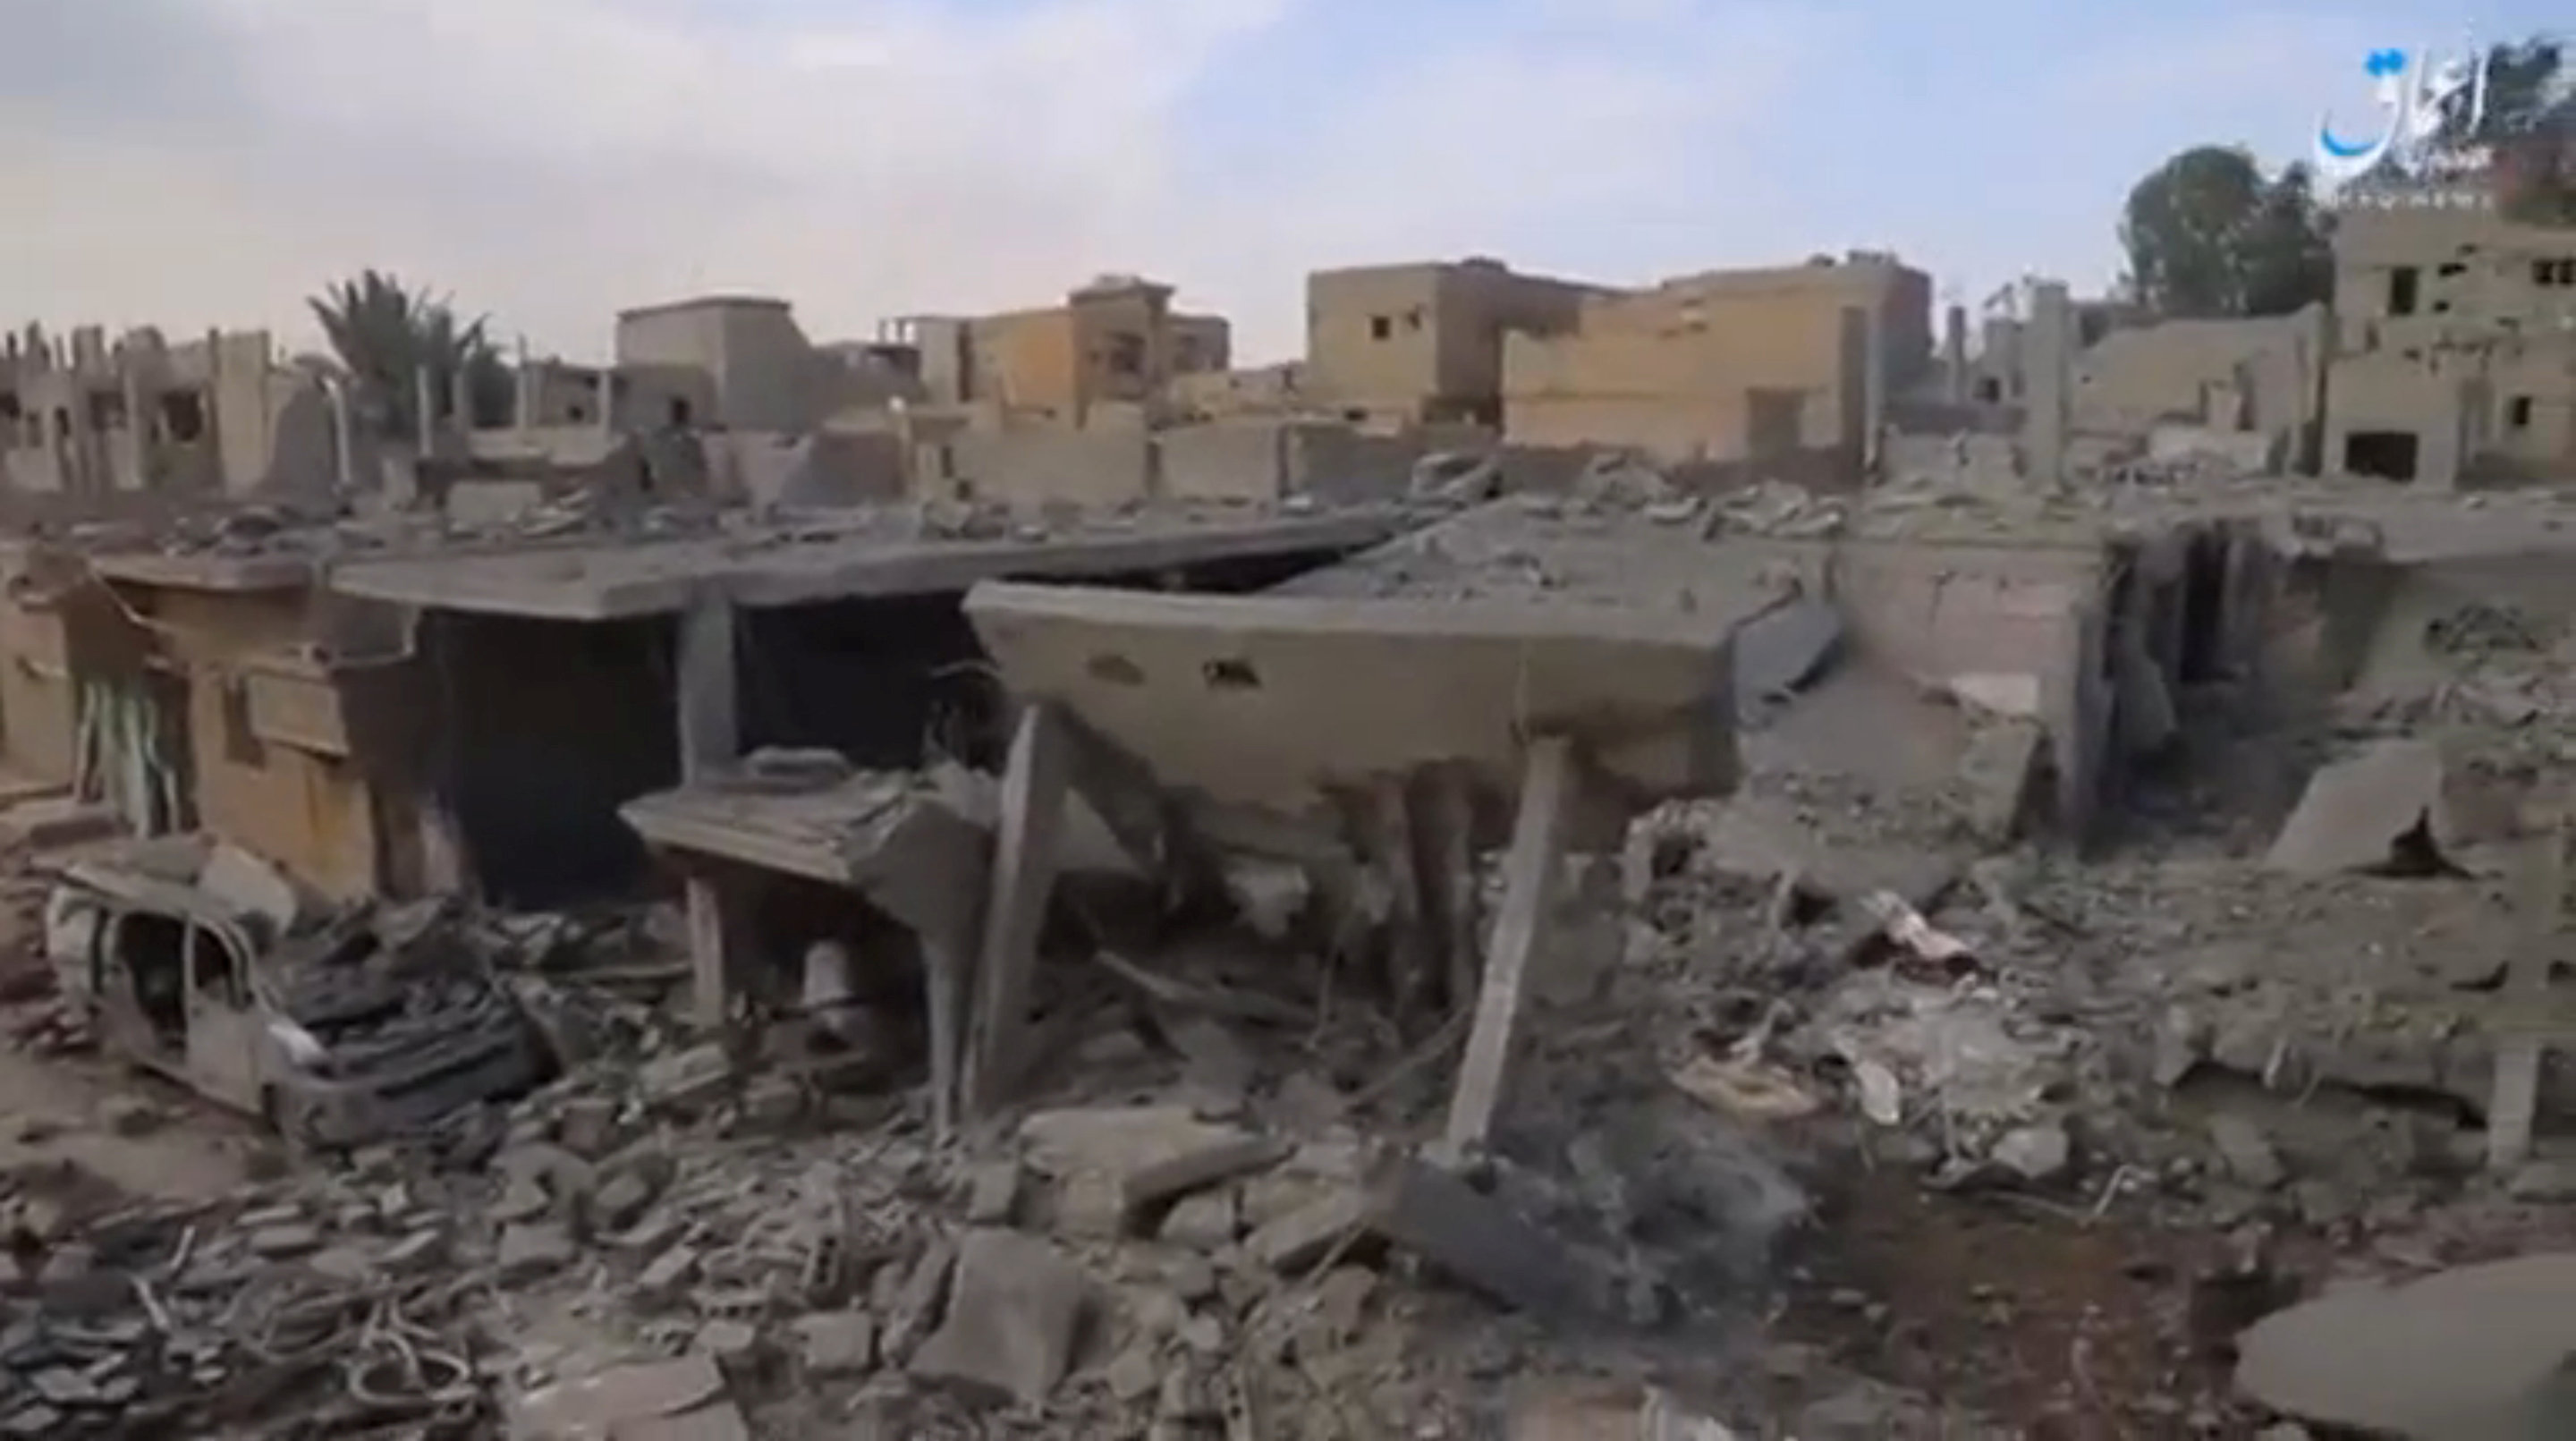 A still image taken from a video released on the internet by ISIS-affiliated Amaq News Agency, on April 18, 2017, purports to show the aftermath, said to be in al-Bukamal town, in Deir al-Zor province, after air strikes thought to have been directed by planes from a US-led military coalition, Syria. Credit: Social Media Website via Reuters TV